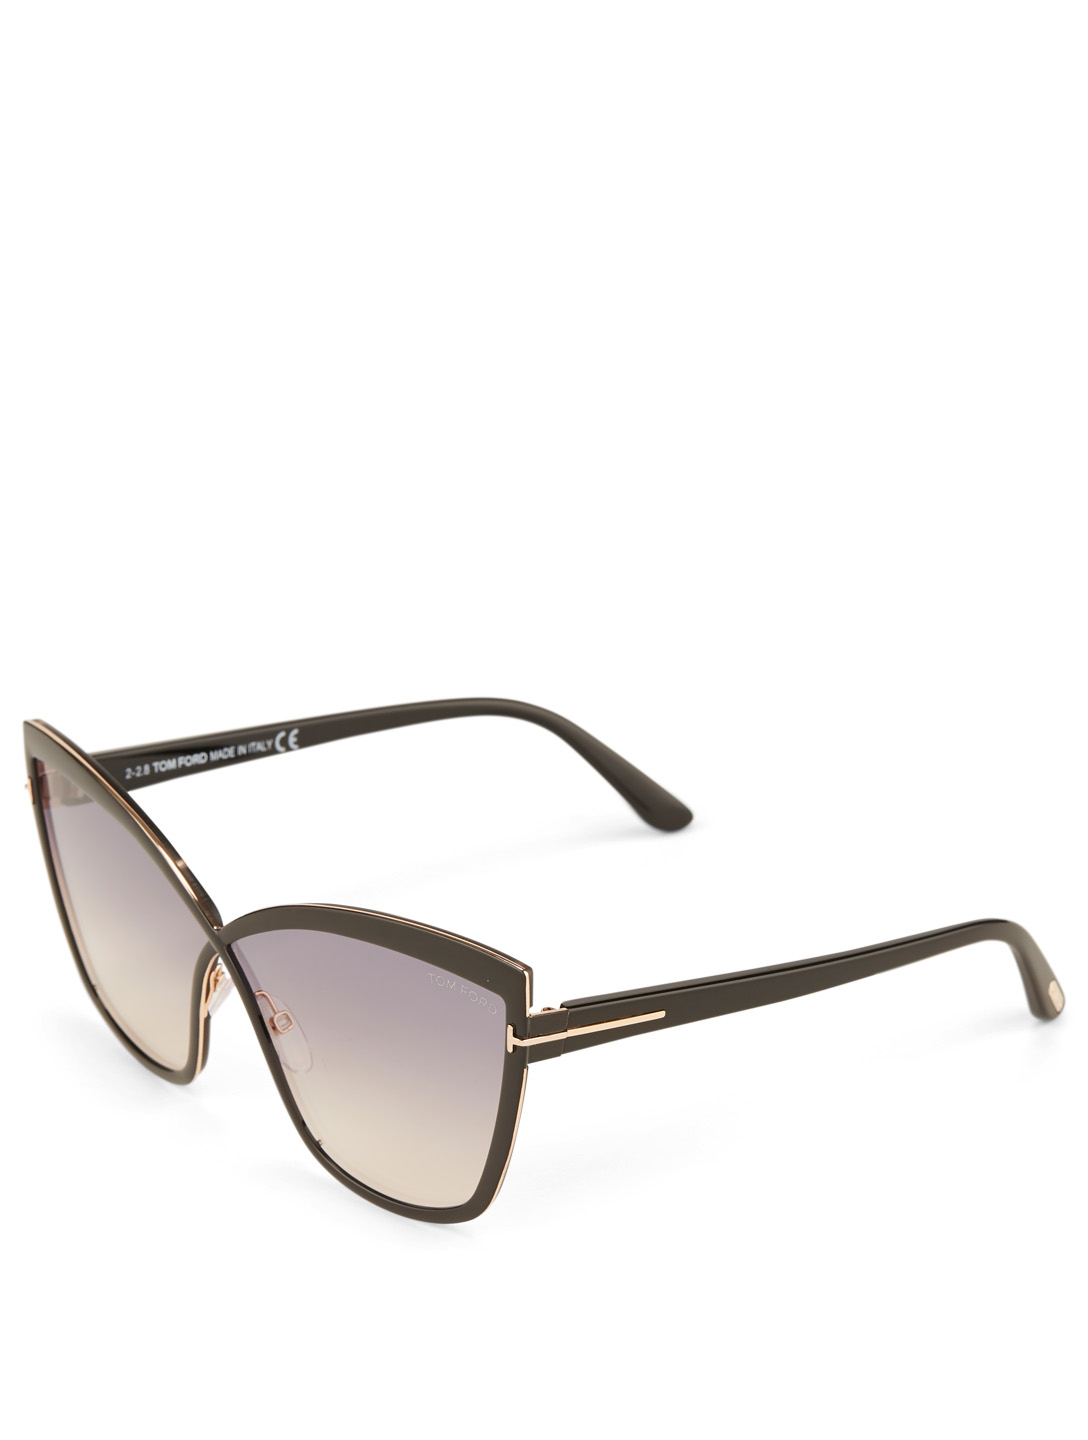 TOM FORD Sandrine Sunglasses Women's Black